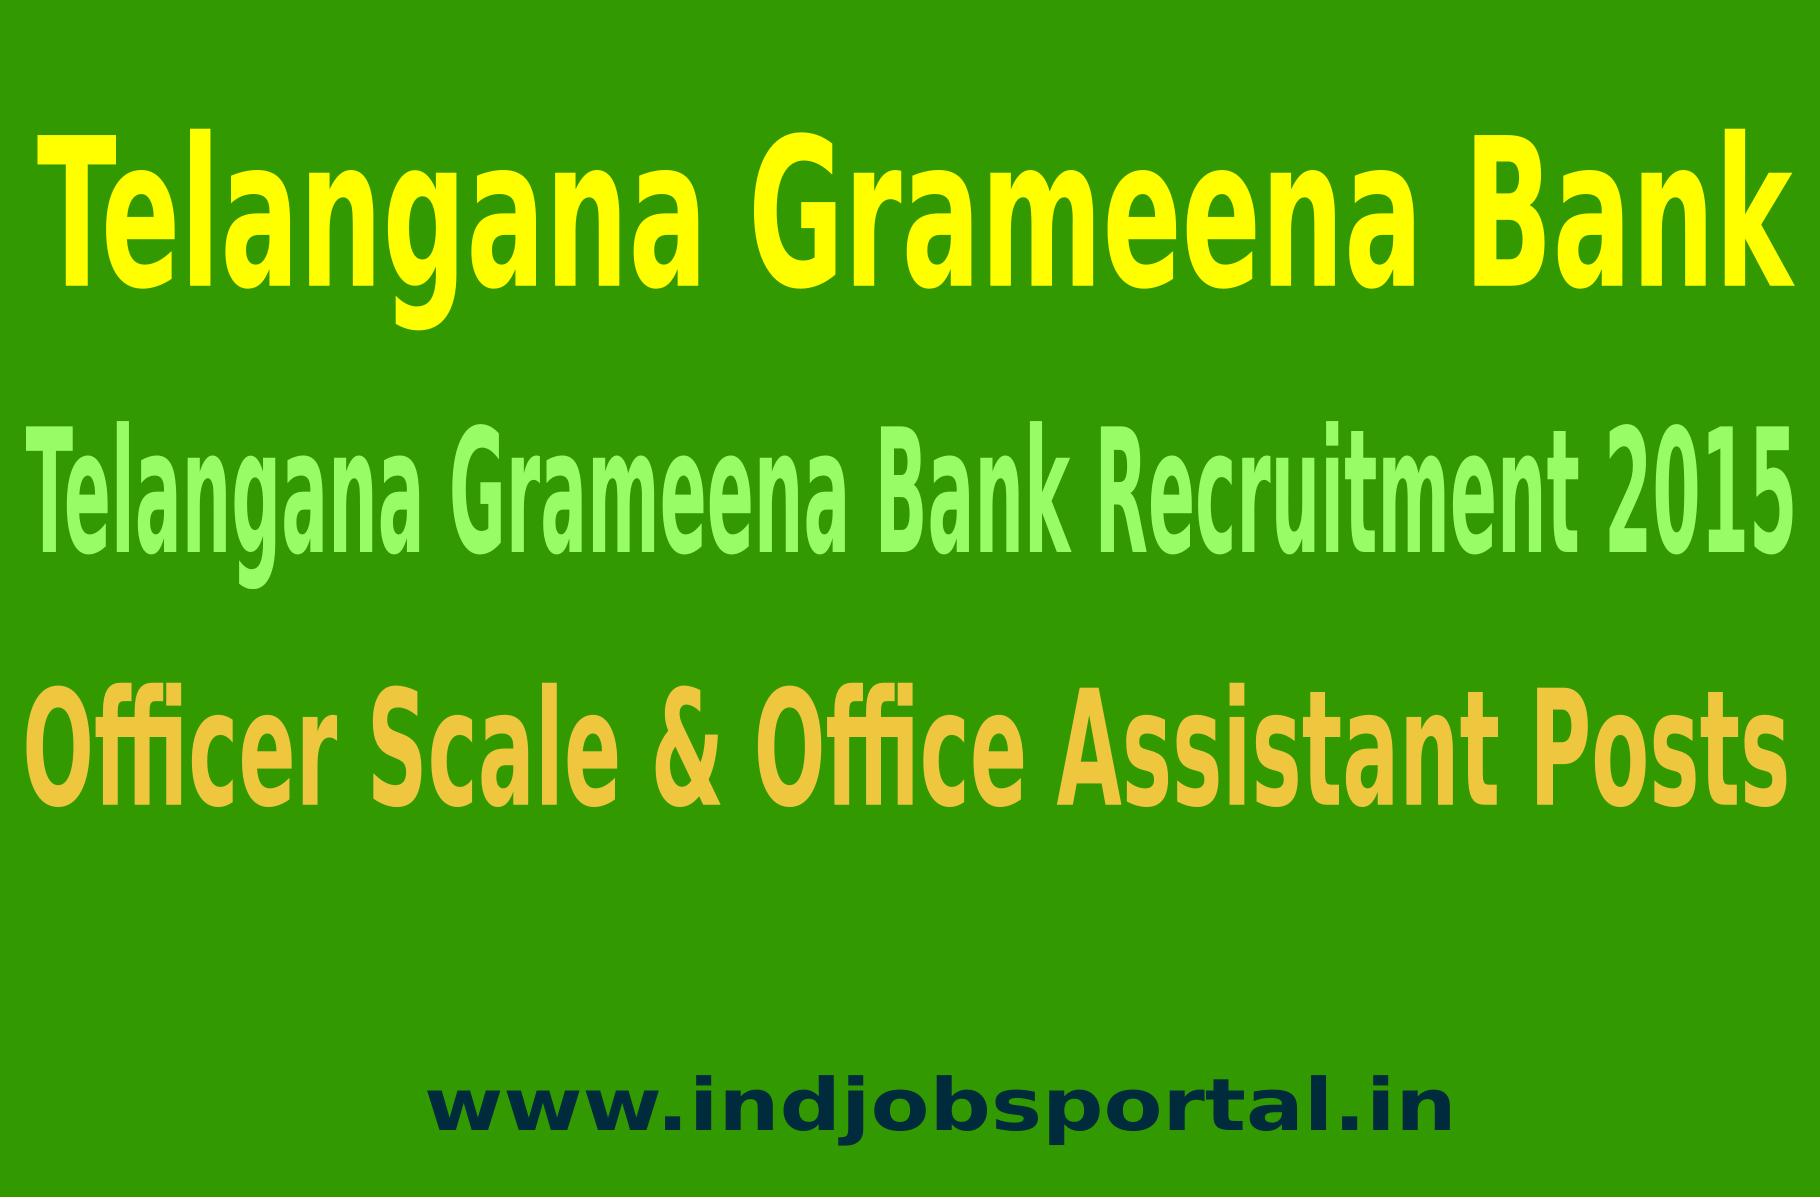 Telangana Grameena Bank Recruitment 2015 For 324 Officer Scale & Office Assistant Posts